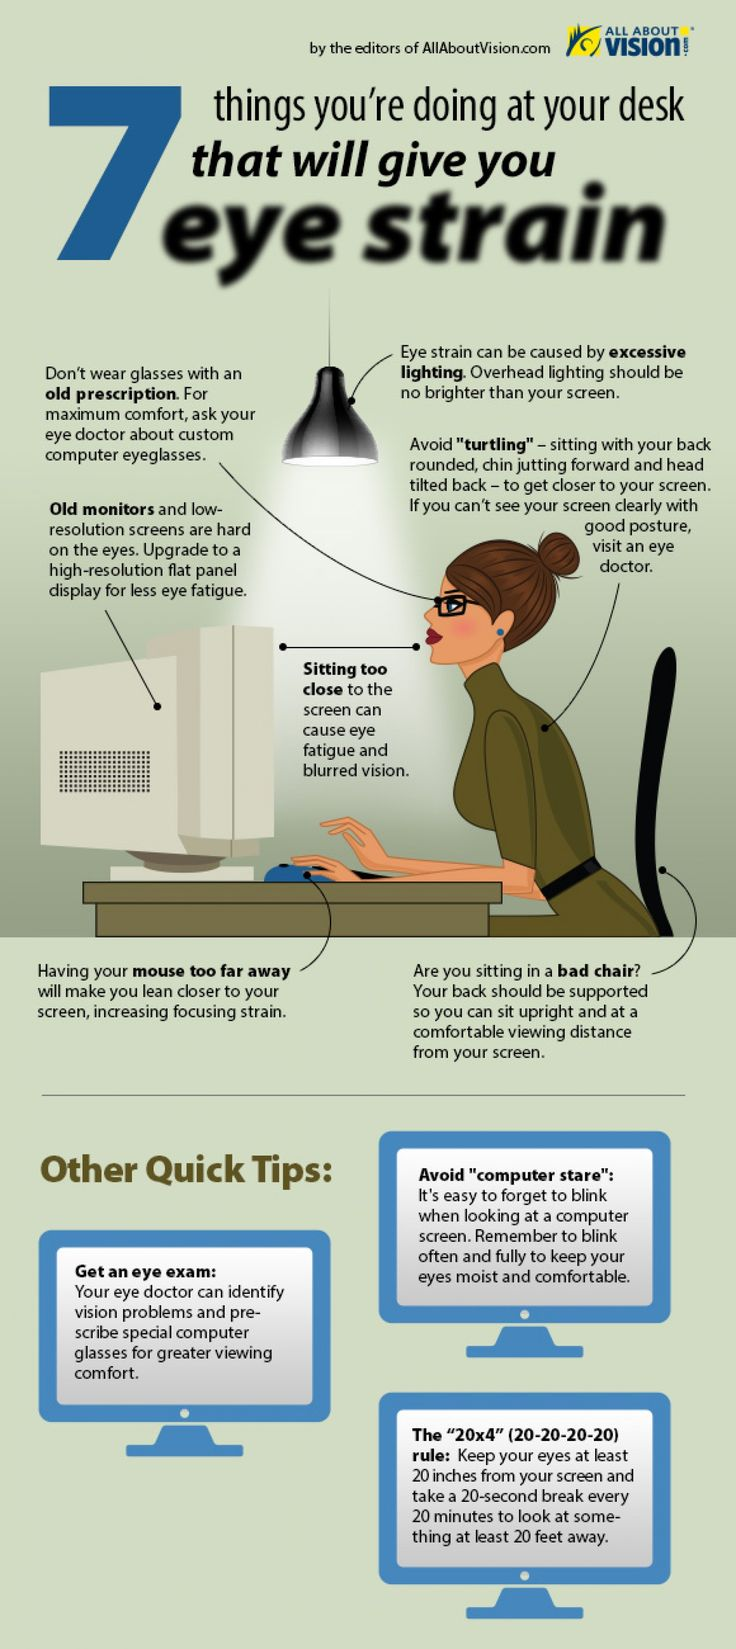 7 Things You're Doing at Your Desk That Give You Eye Strain Infographic | All About Vision